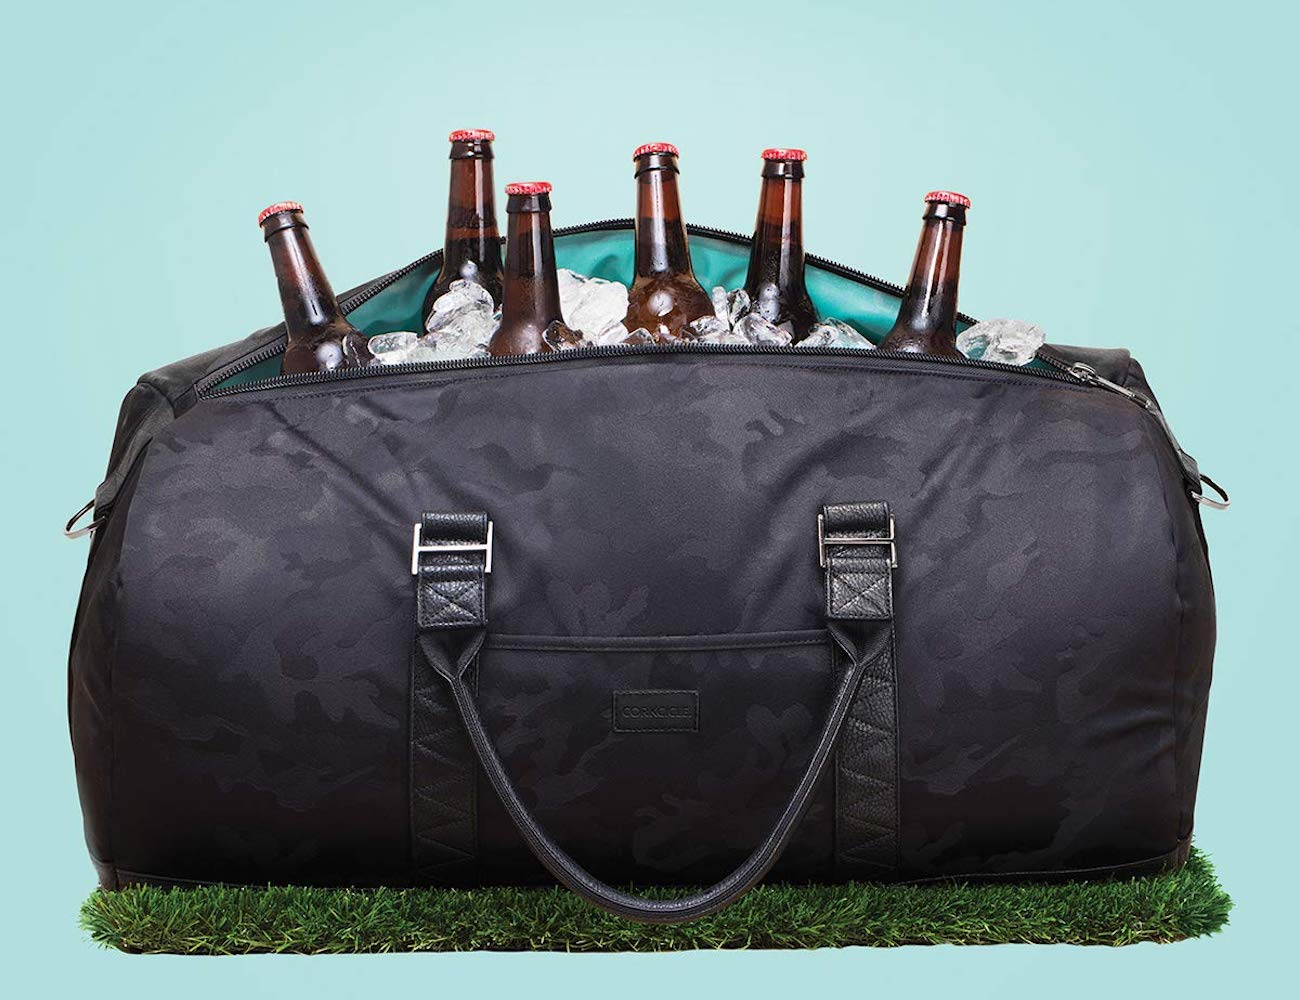 Corkcicle Ivanhoe Duffle Cooler Bag